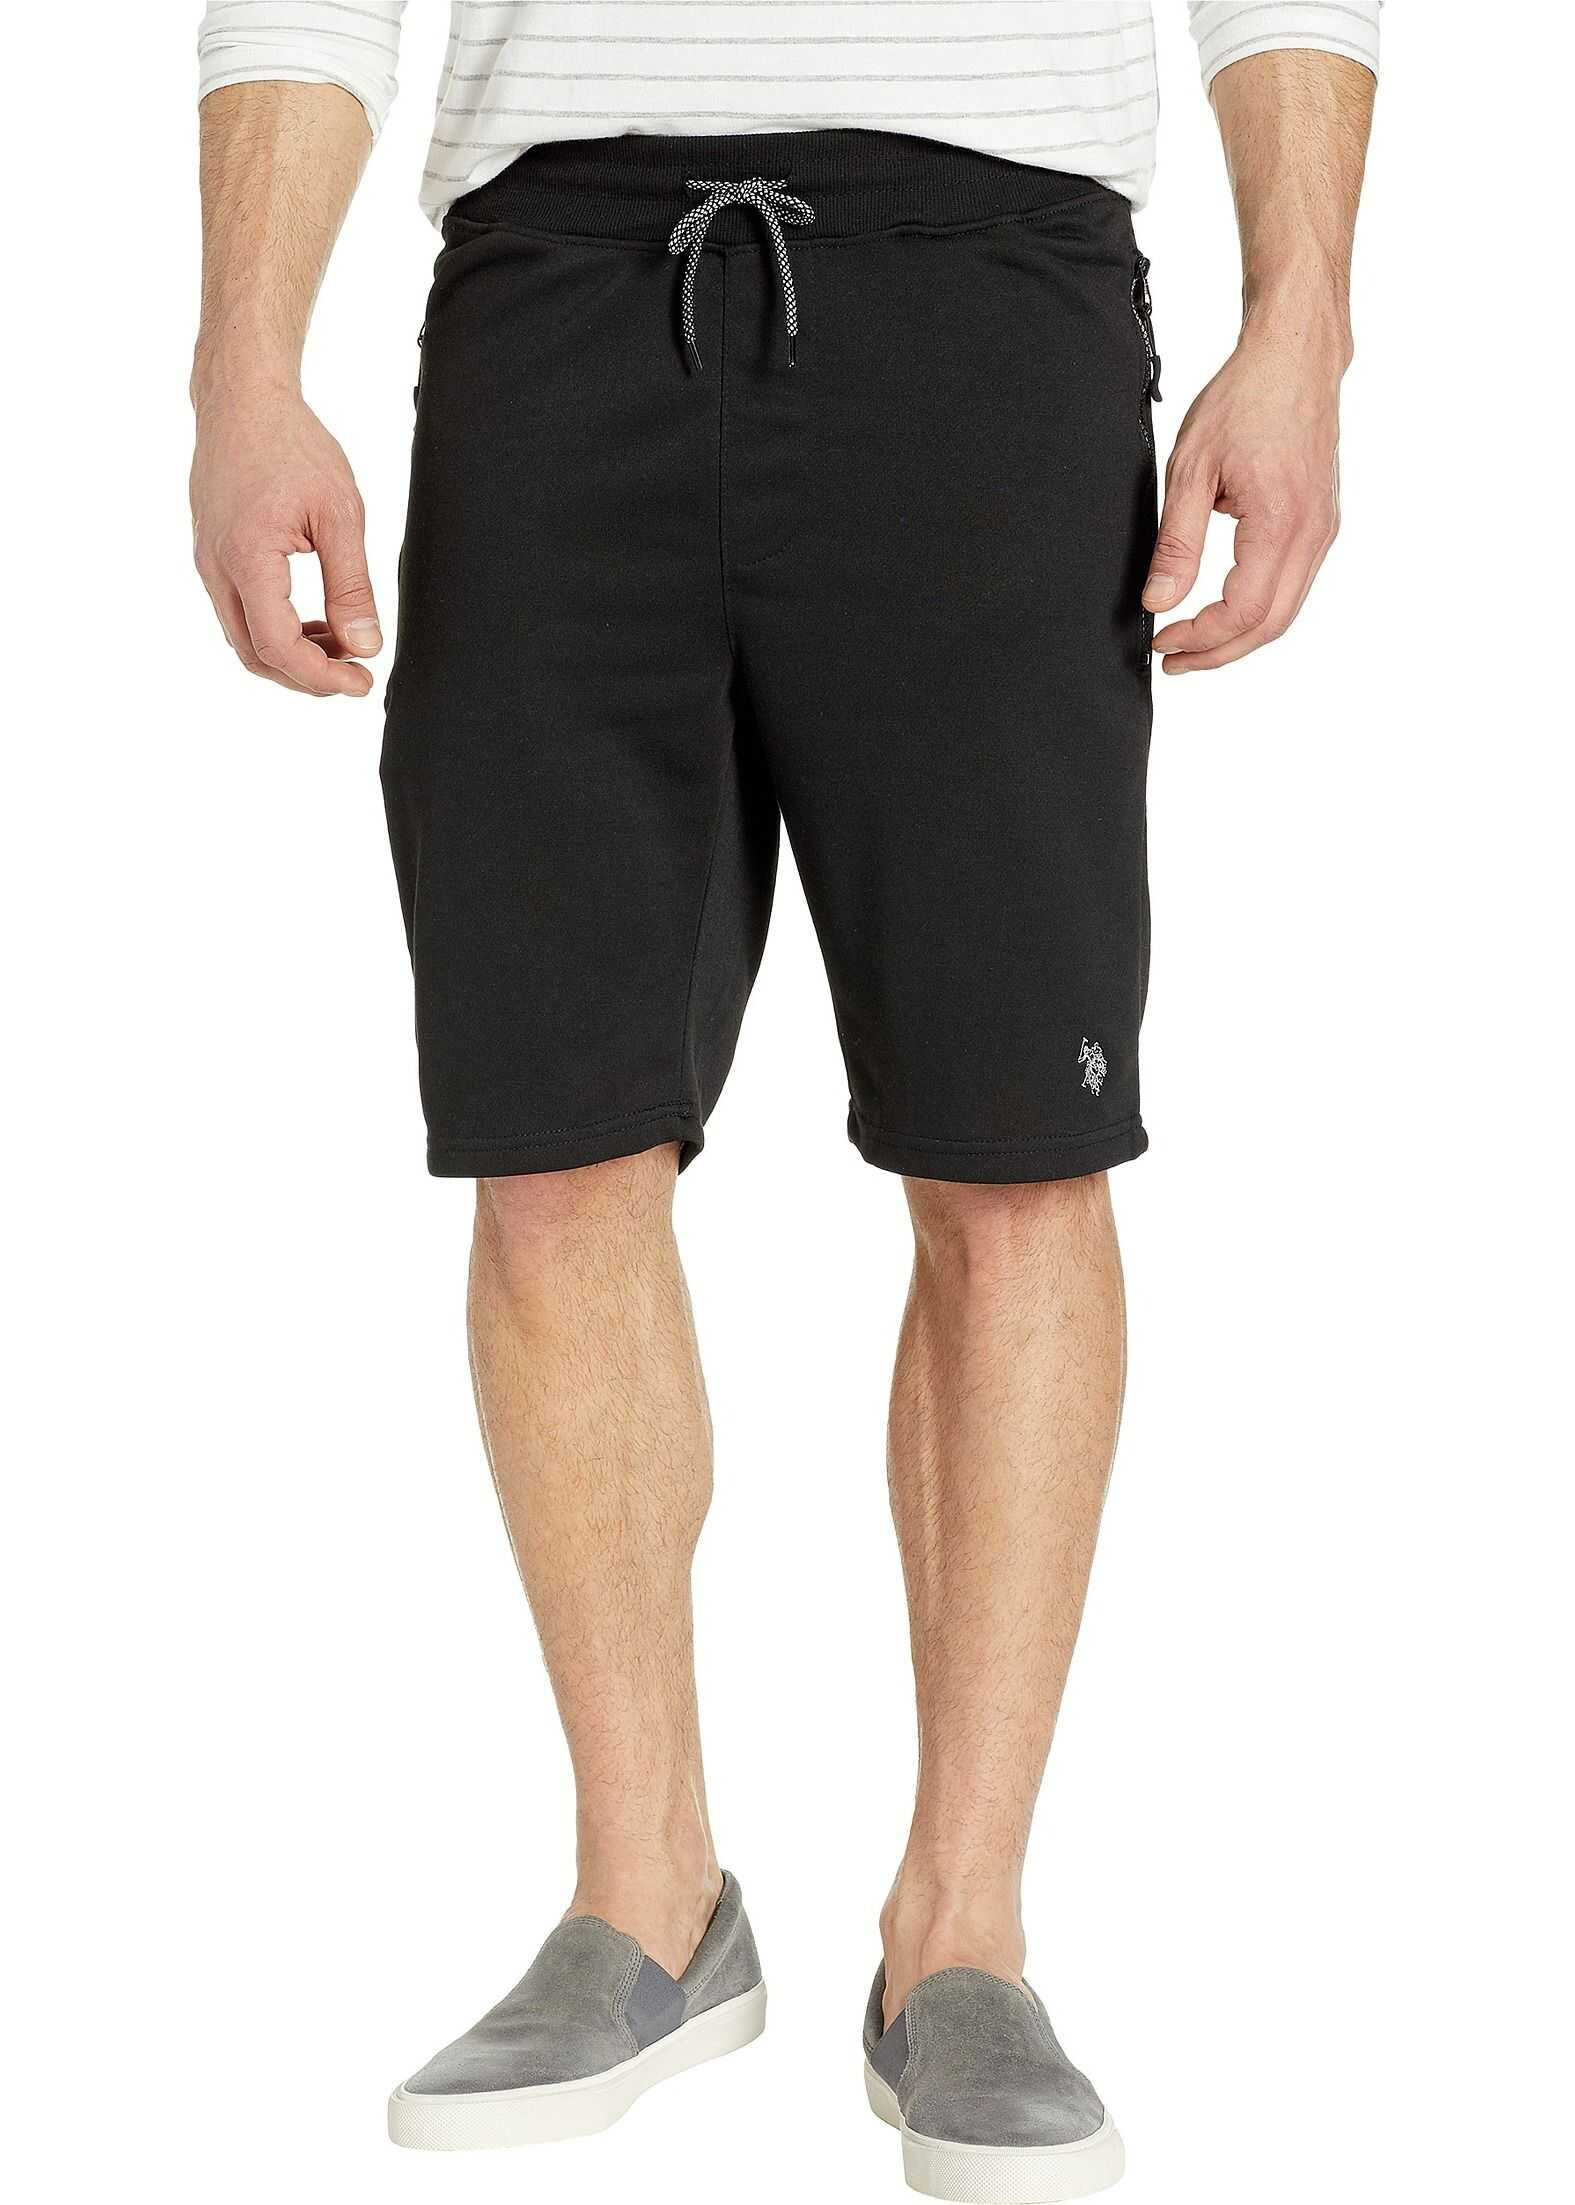 U.S. POLO ASSN. Shorts with Zip Pockets Black